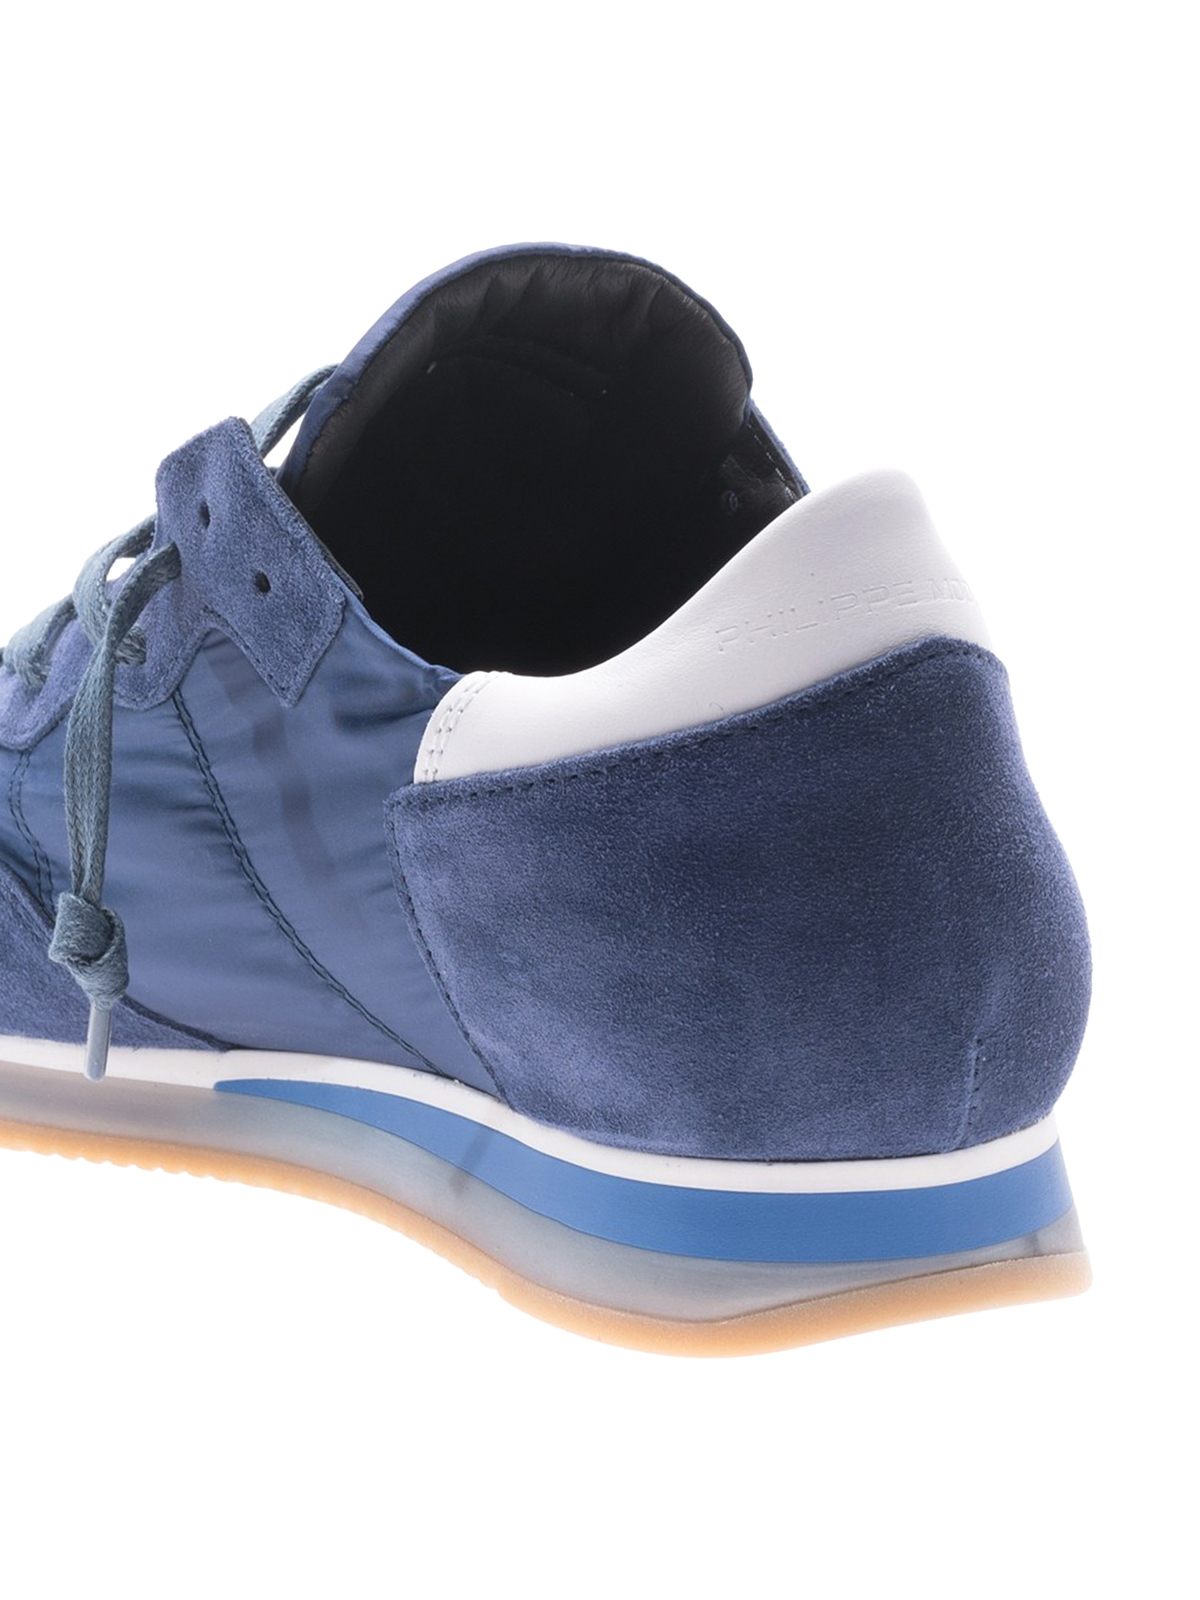 Philippe Model - Tropez Mondial low top sneakers - trainers - TRLU W017 5e54b21c426